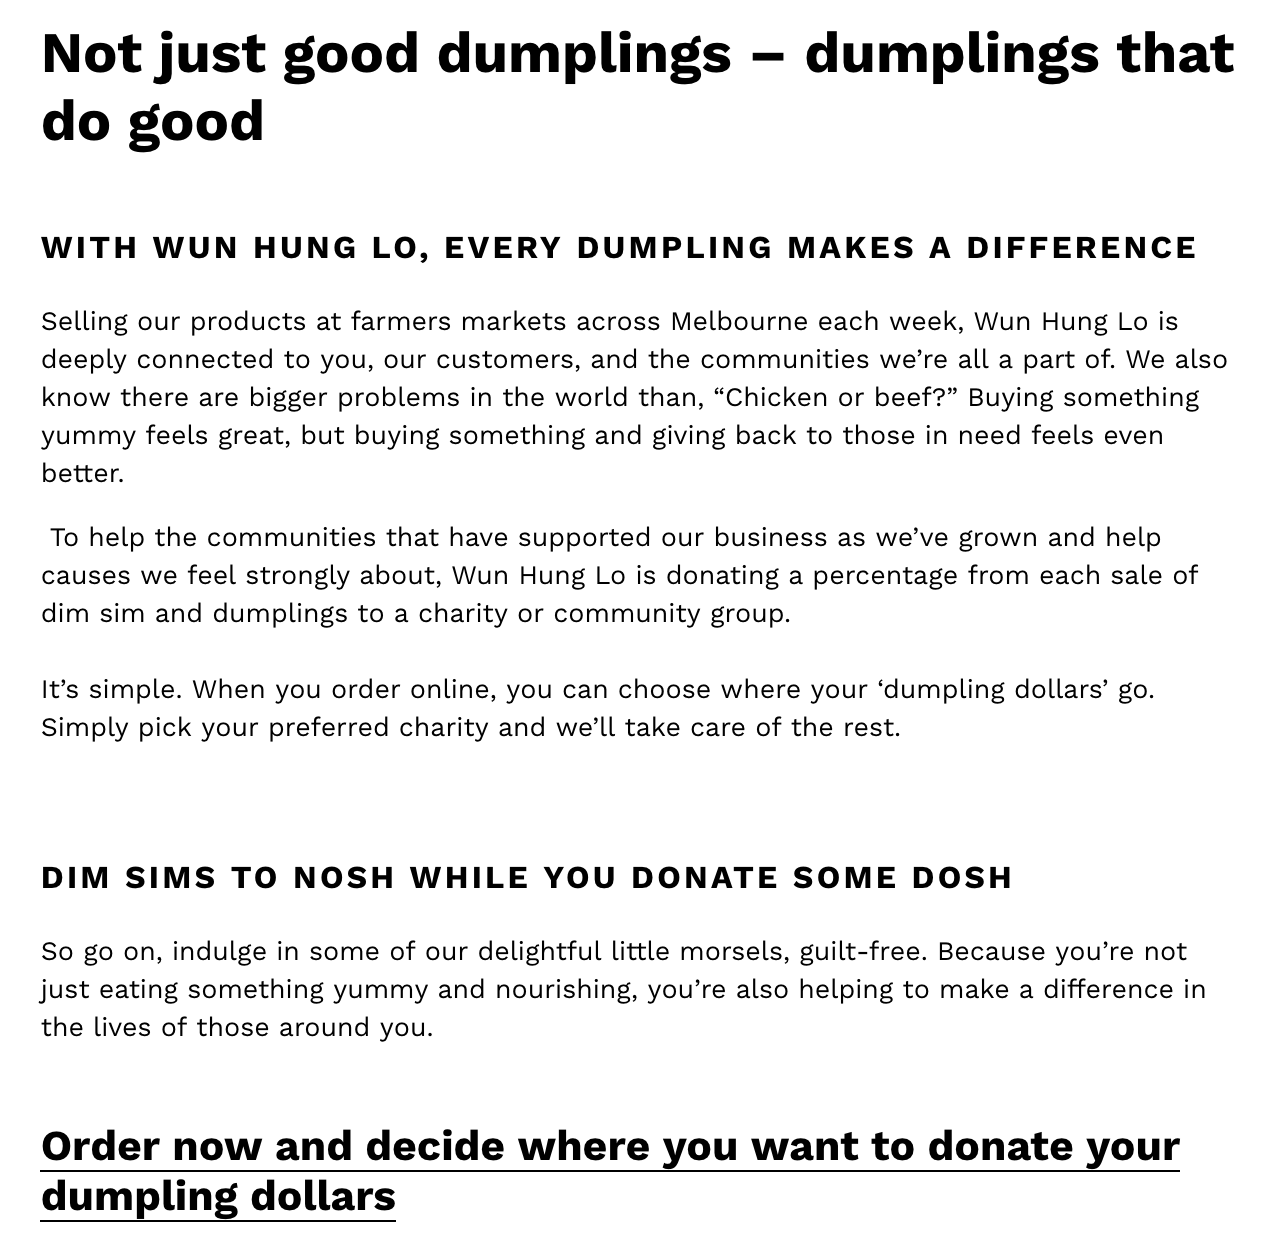 WHL-dumpling-dollars-web-copy